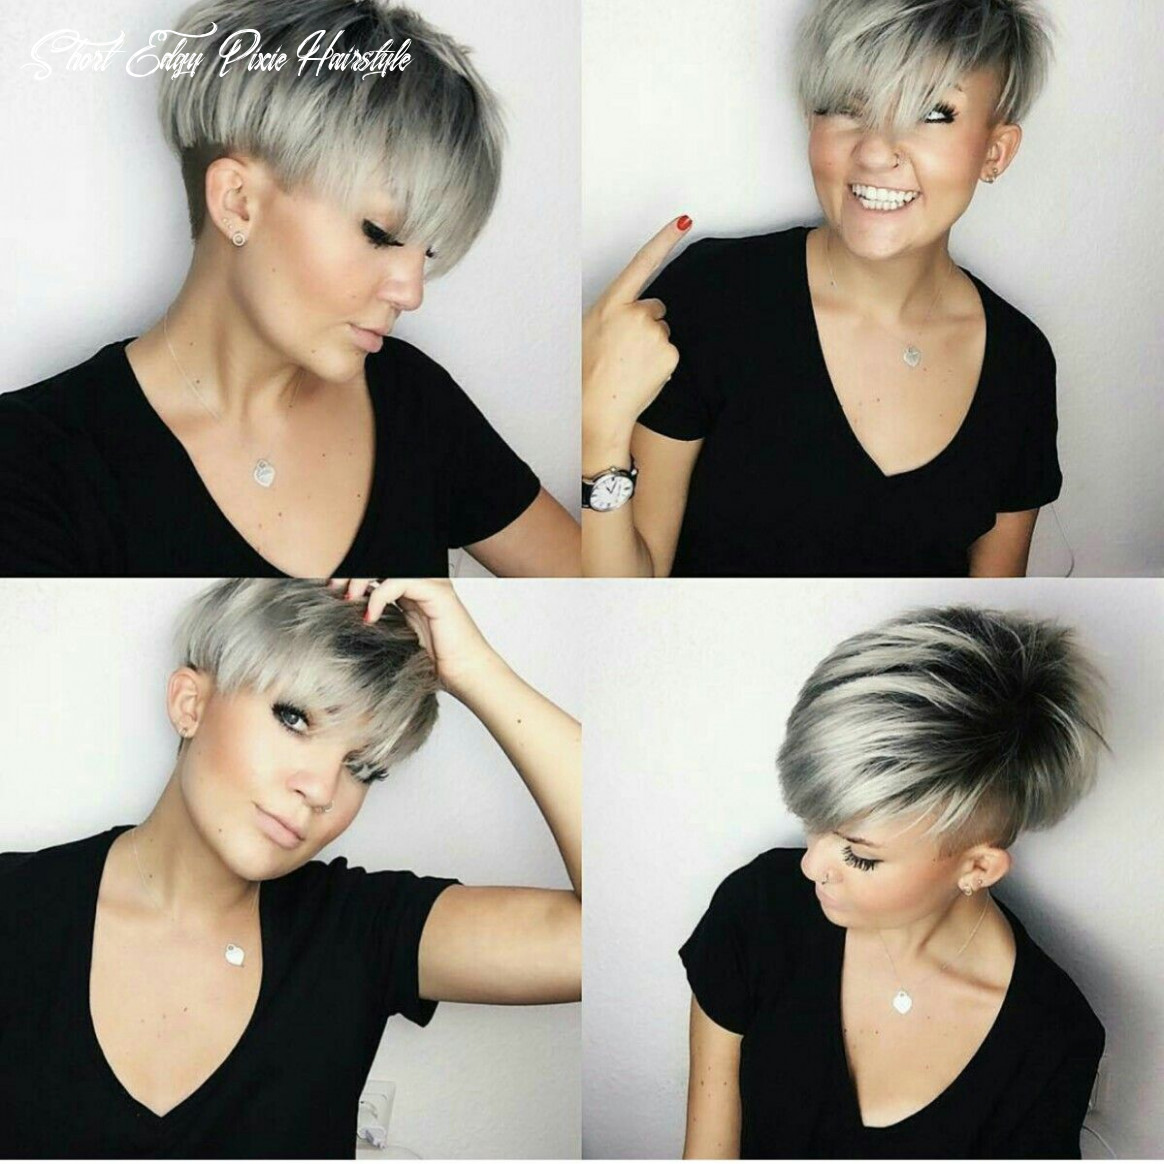 Pin on health &beauty! short edgy pixie hairstyle